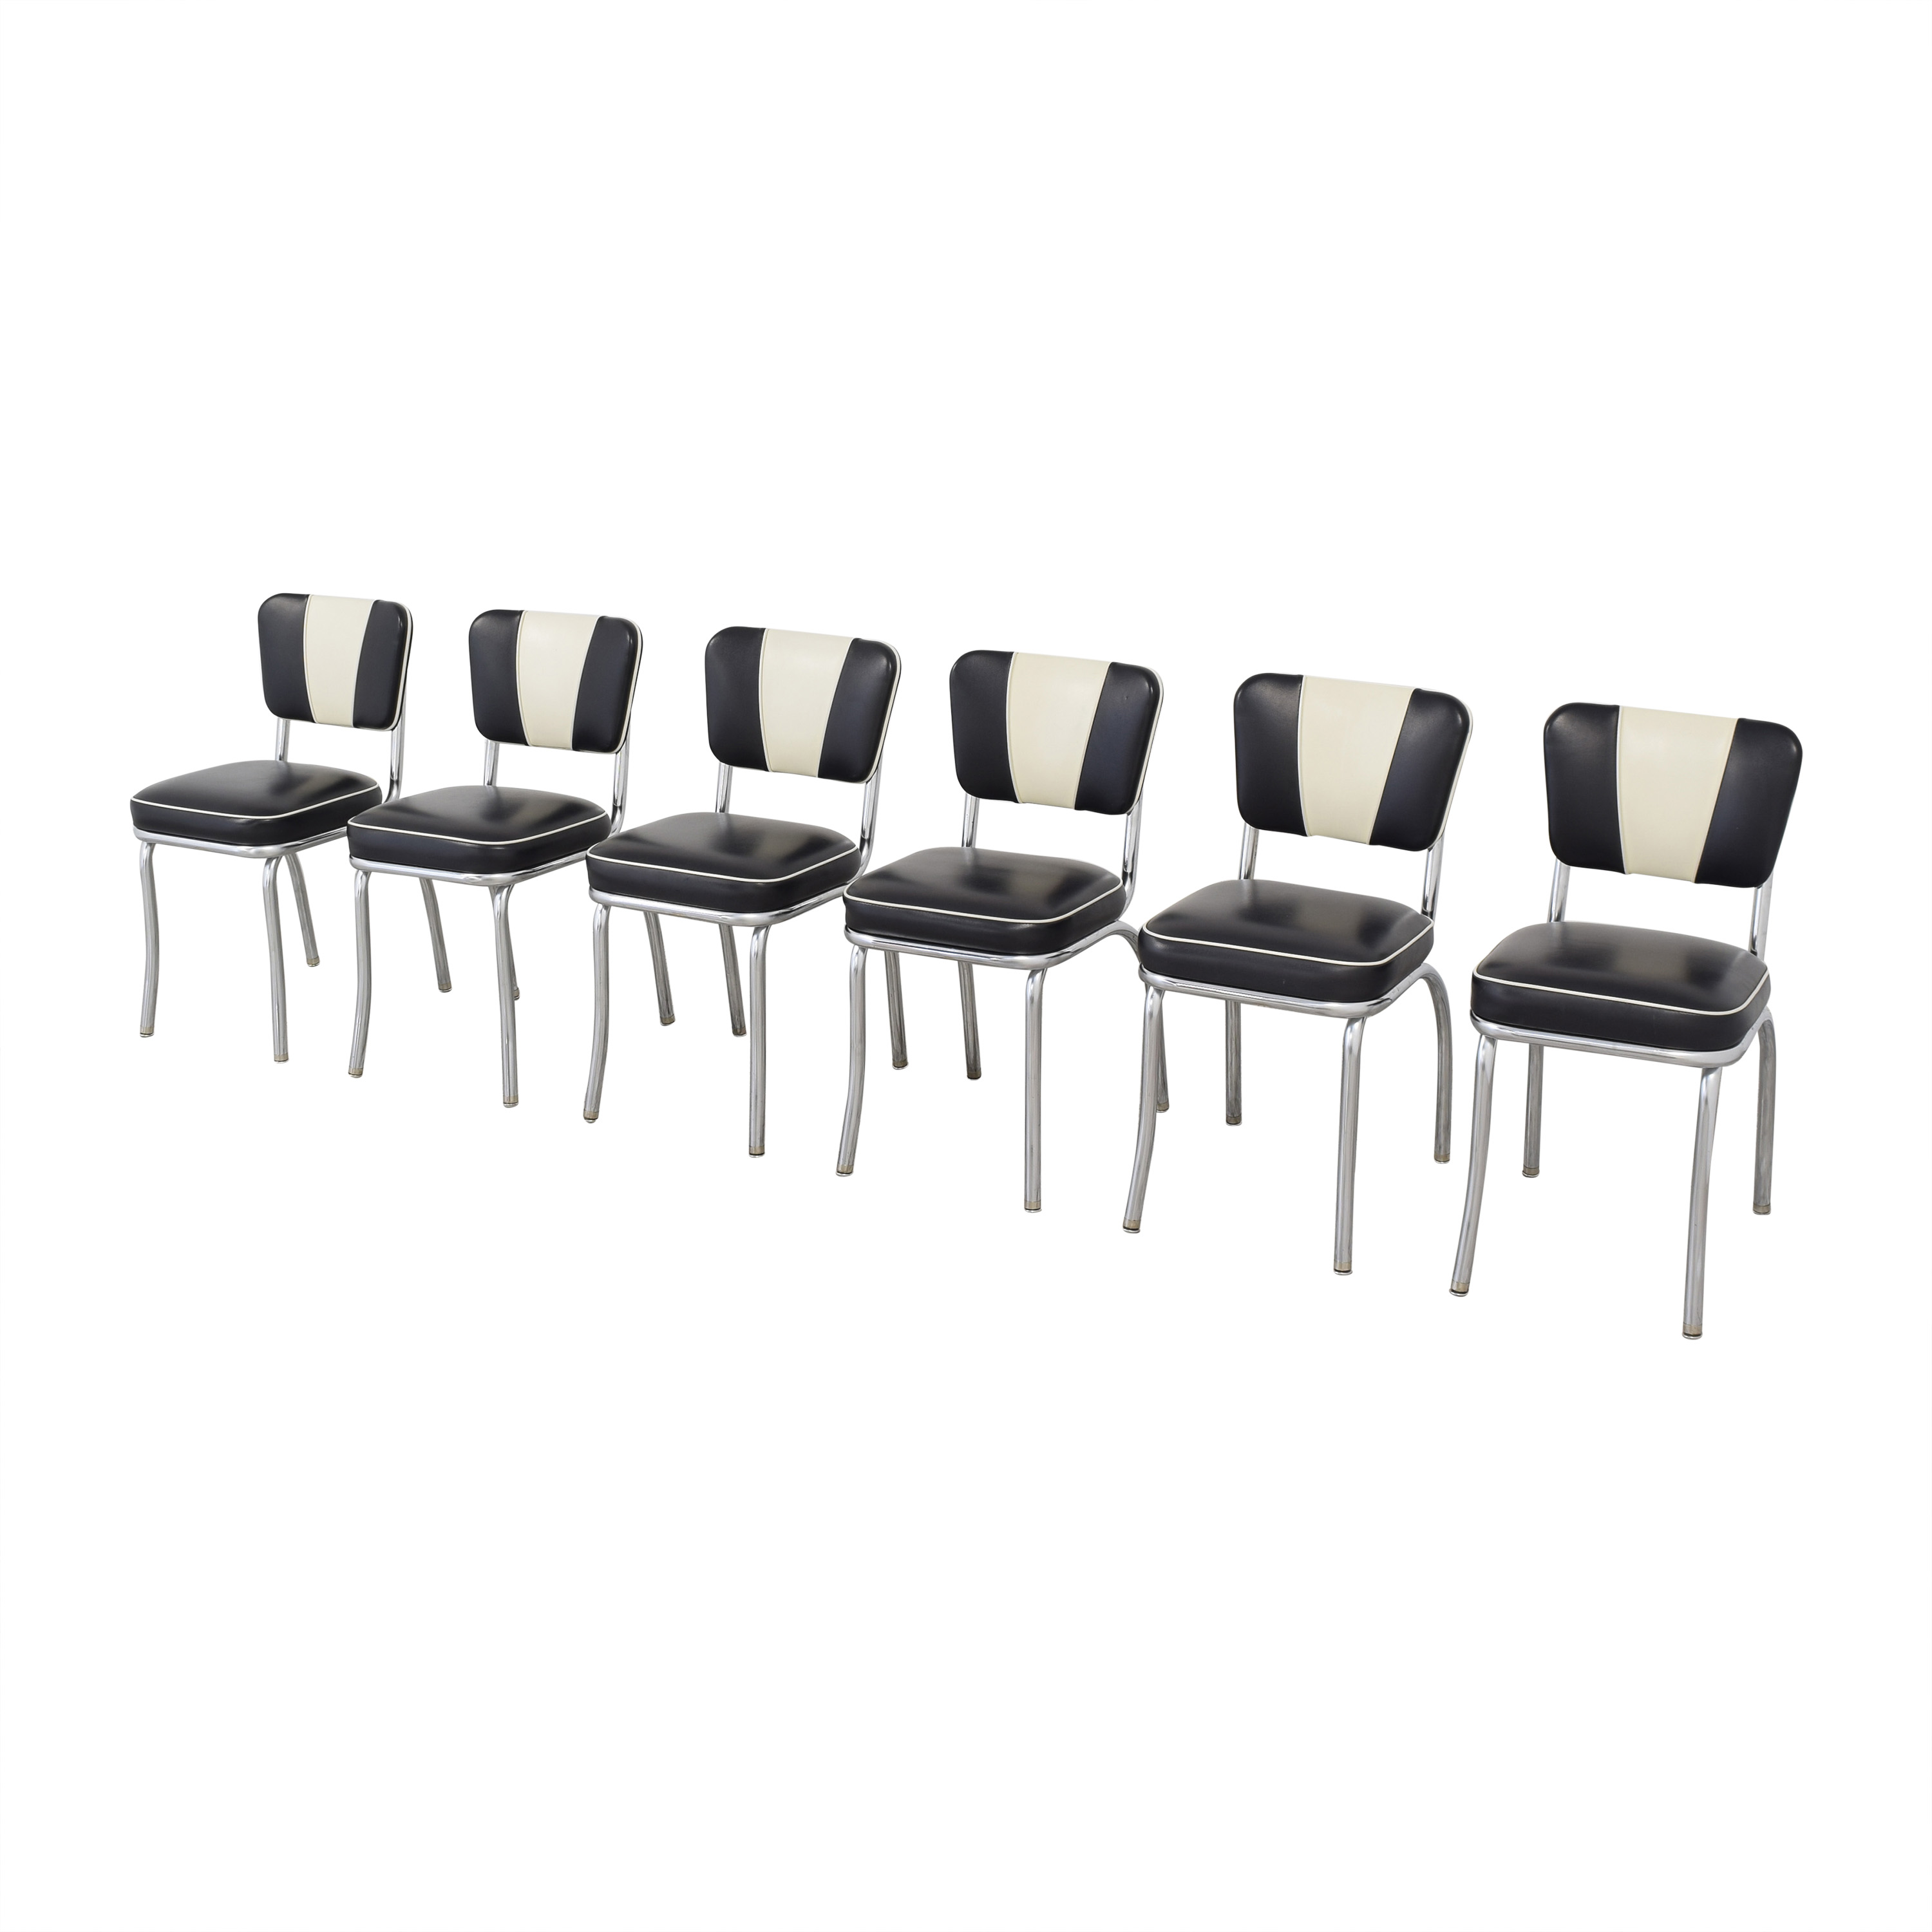 Richardson Seating Corp Richardson Seating Classic Diner Chair Chairs